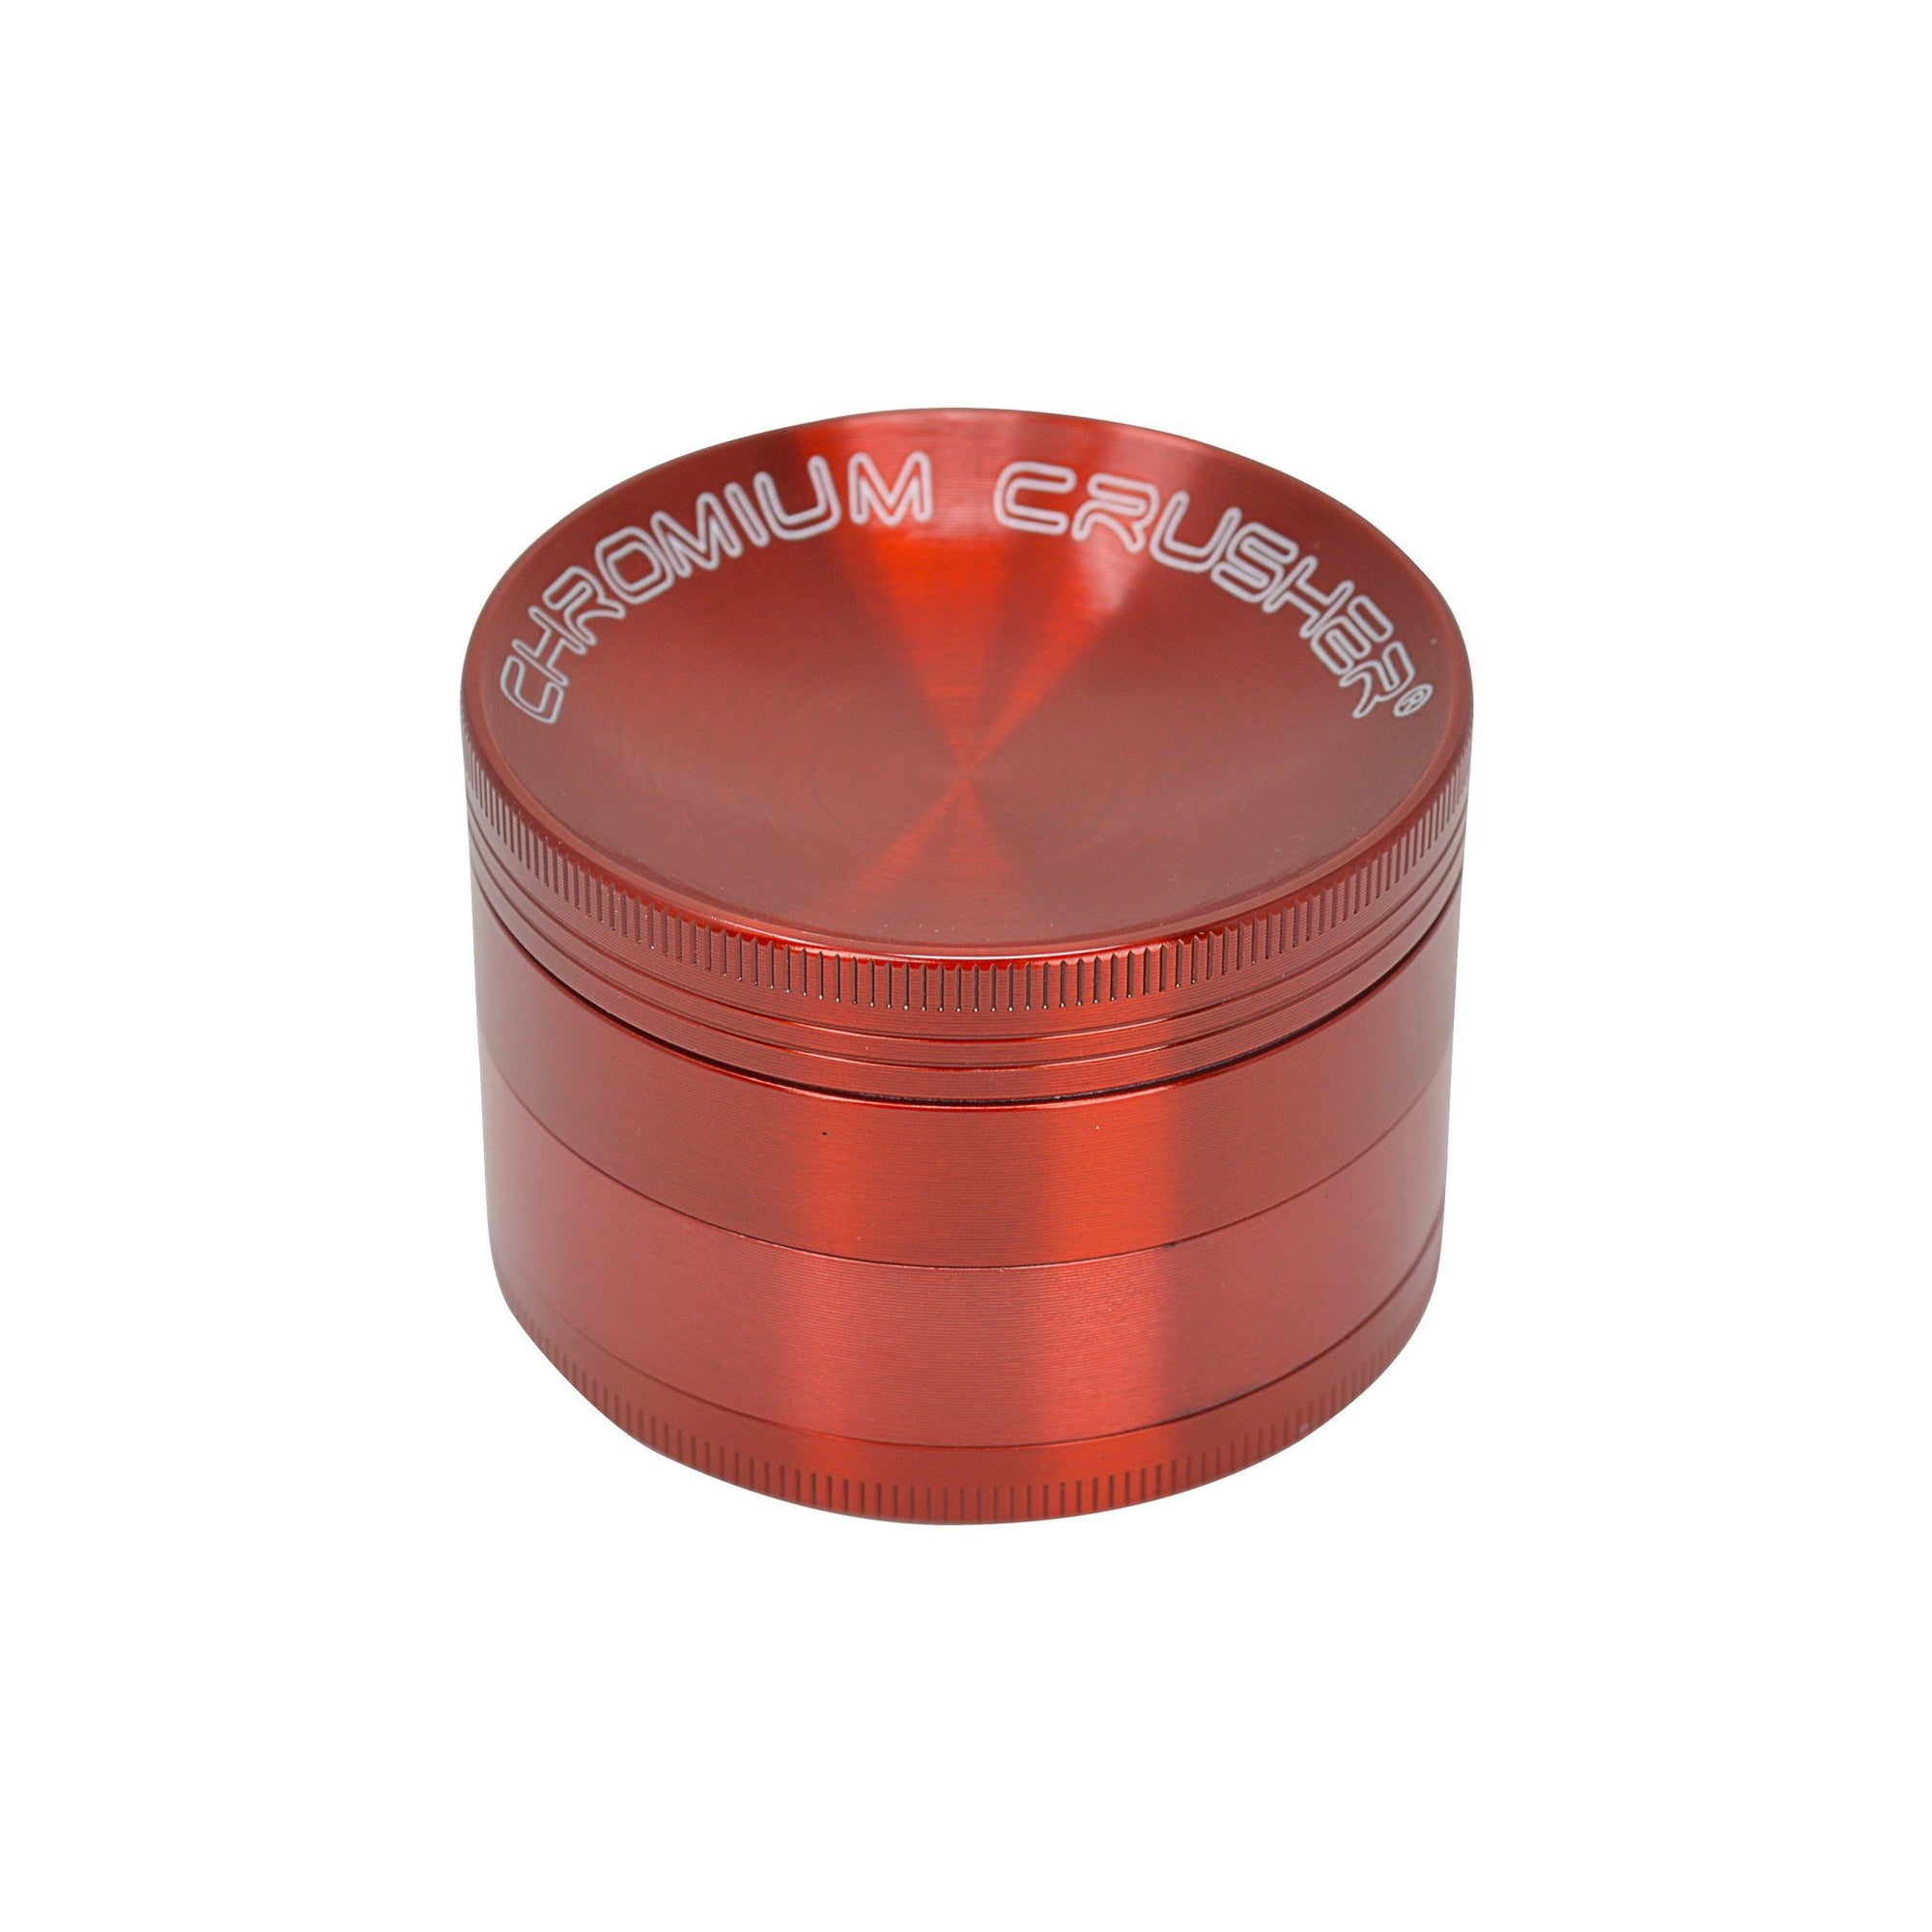 Cromium Crusher - 63mm Red